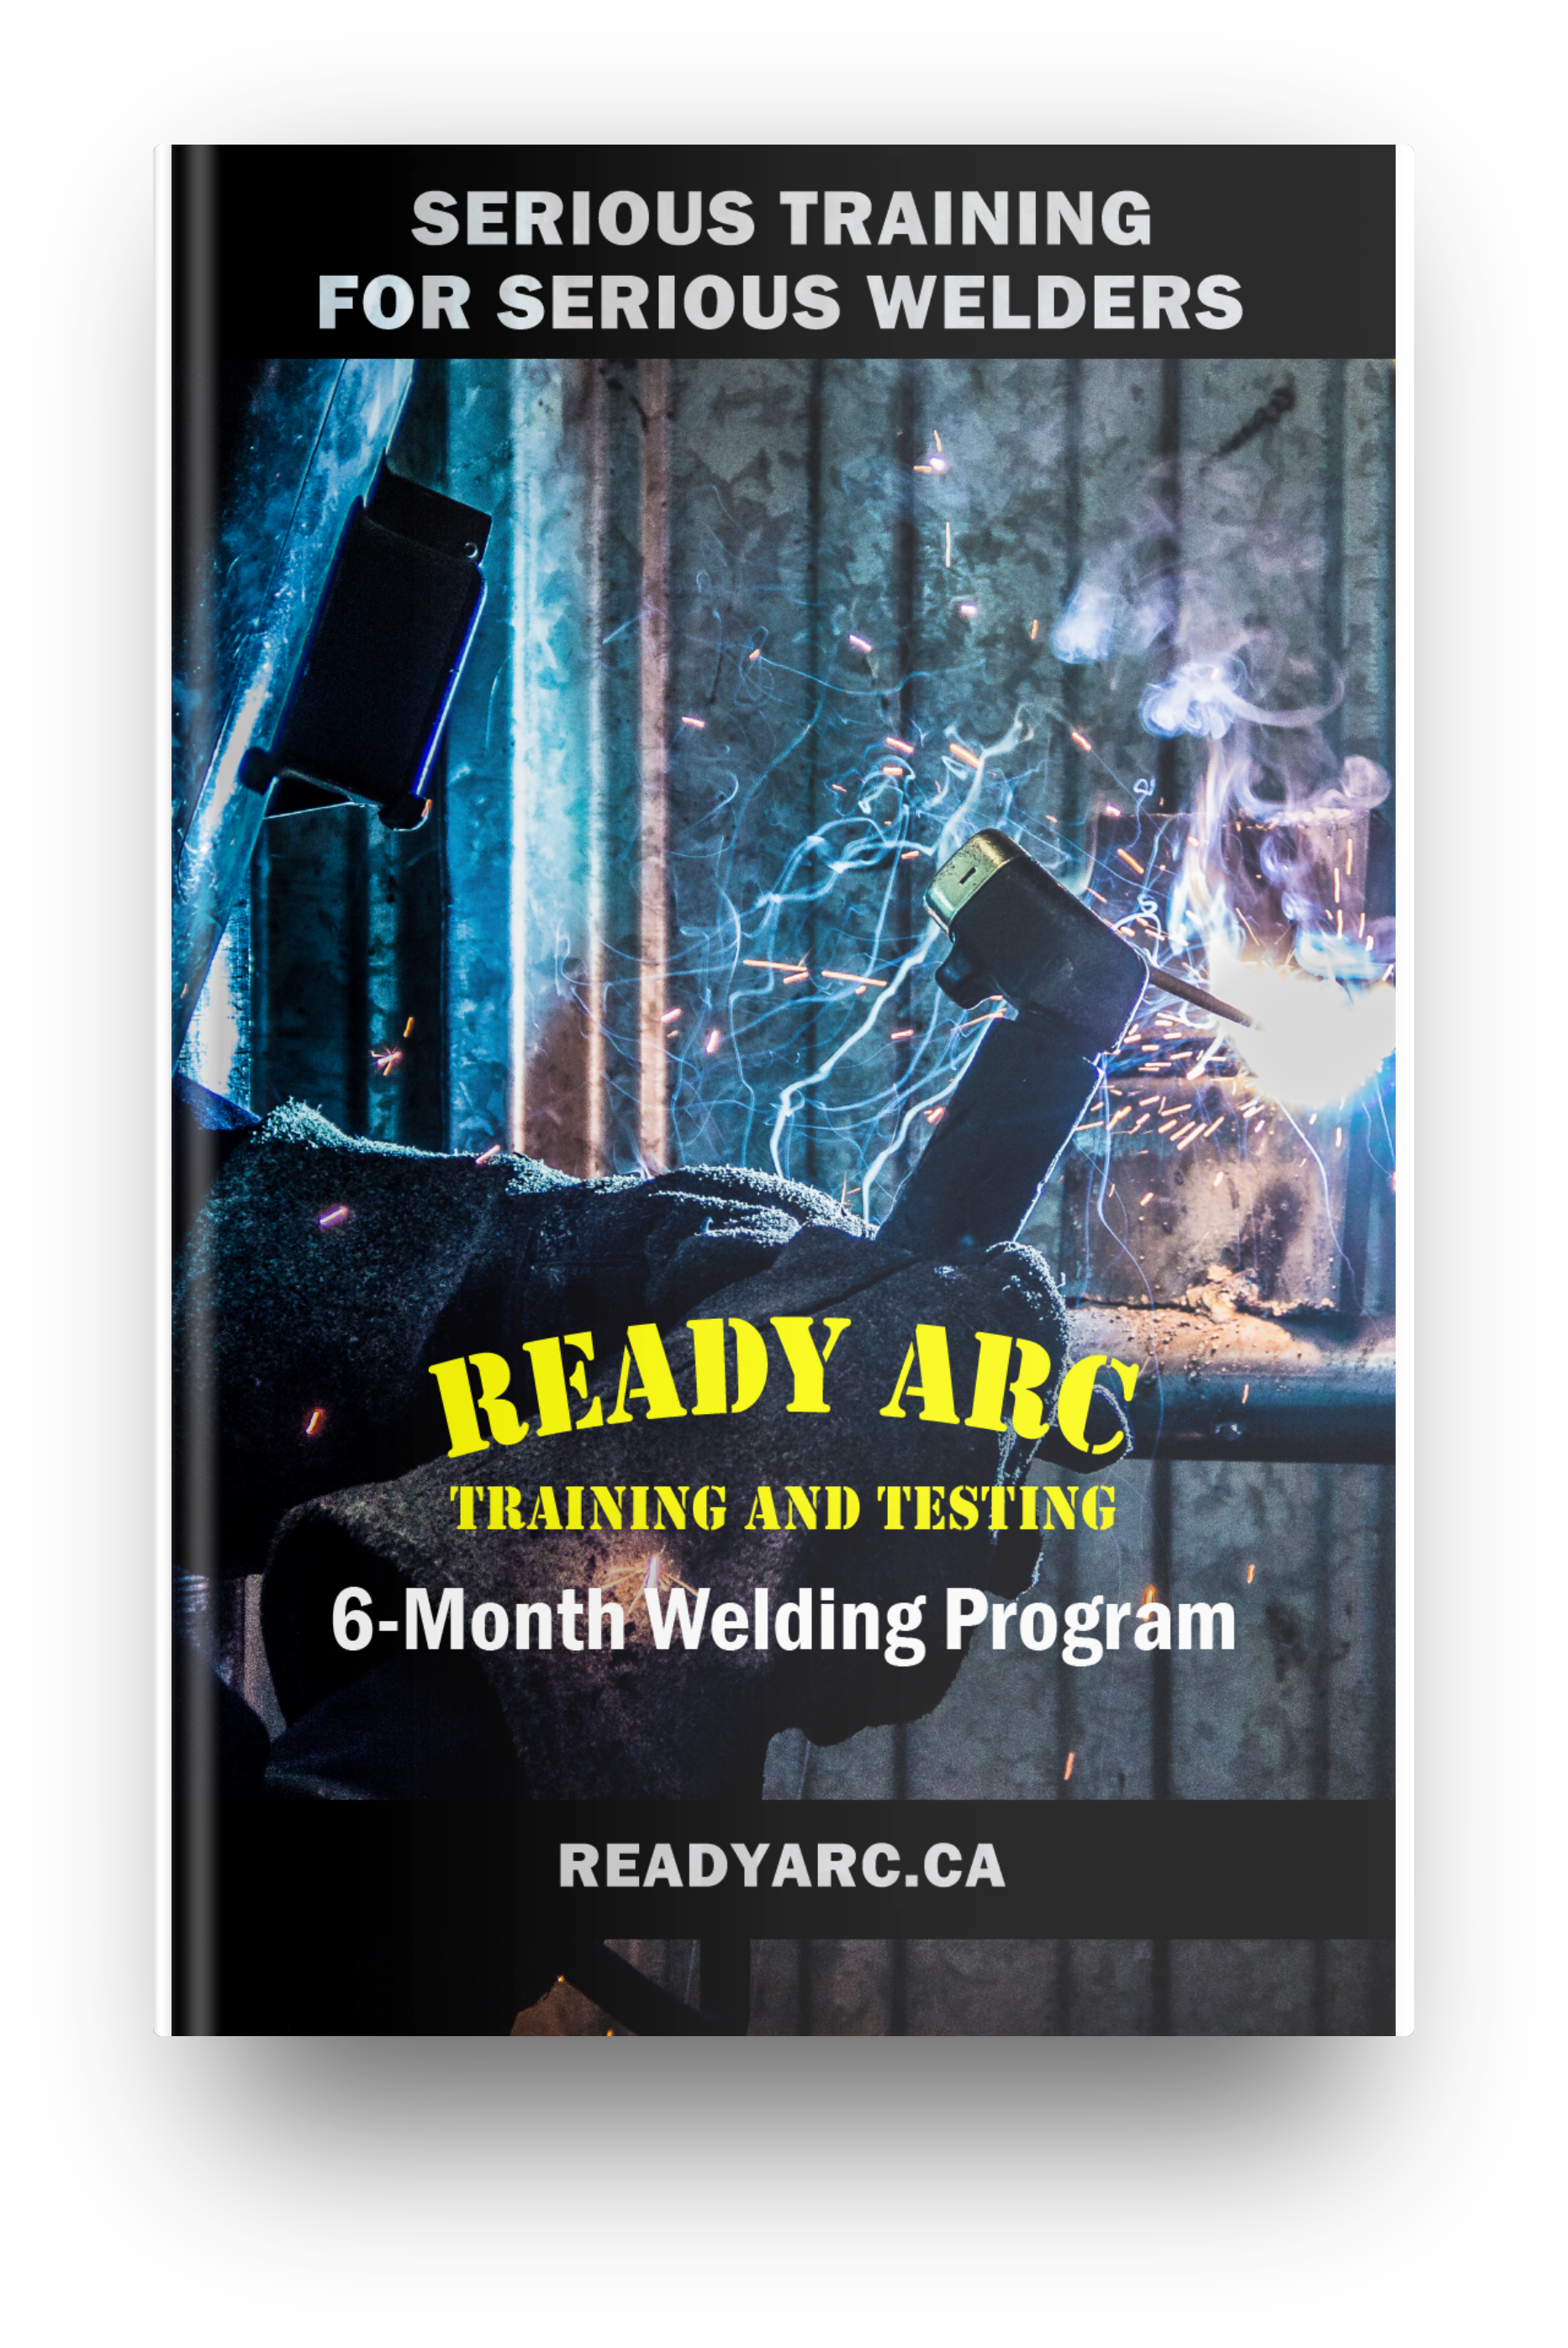 Ready to Learn More? Download our Program Booklet